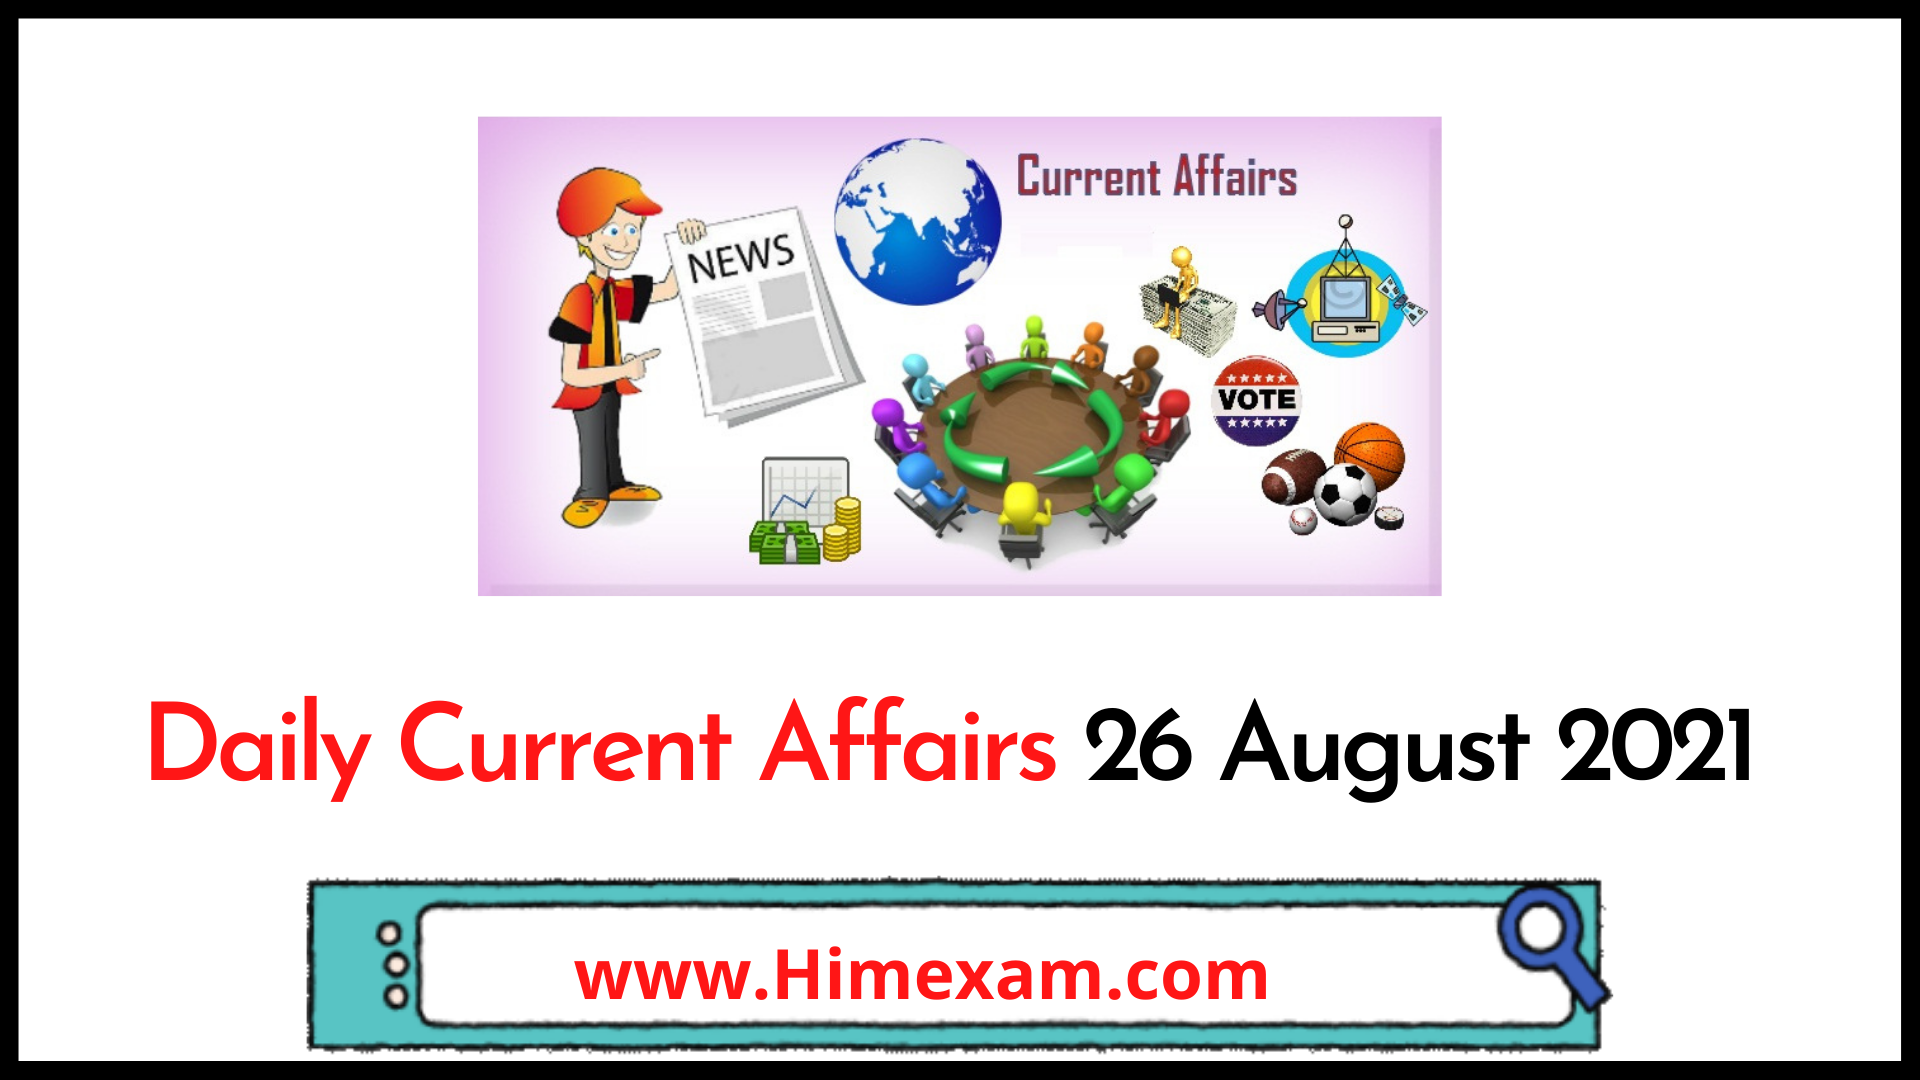 Daily Current Affairs 26 August 2021